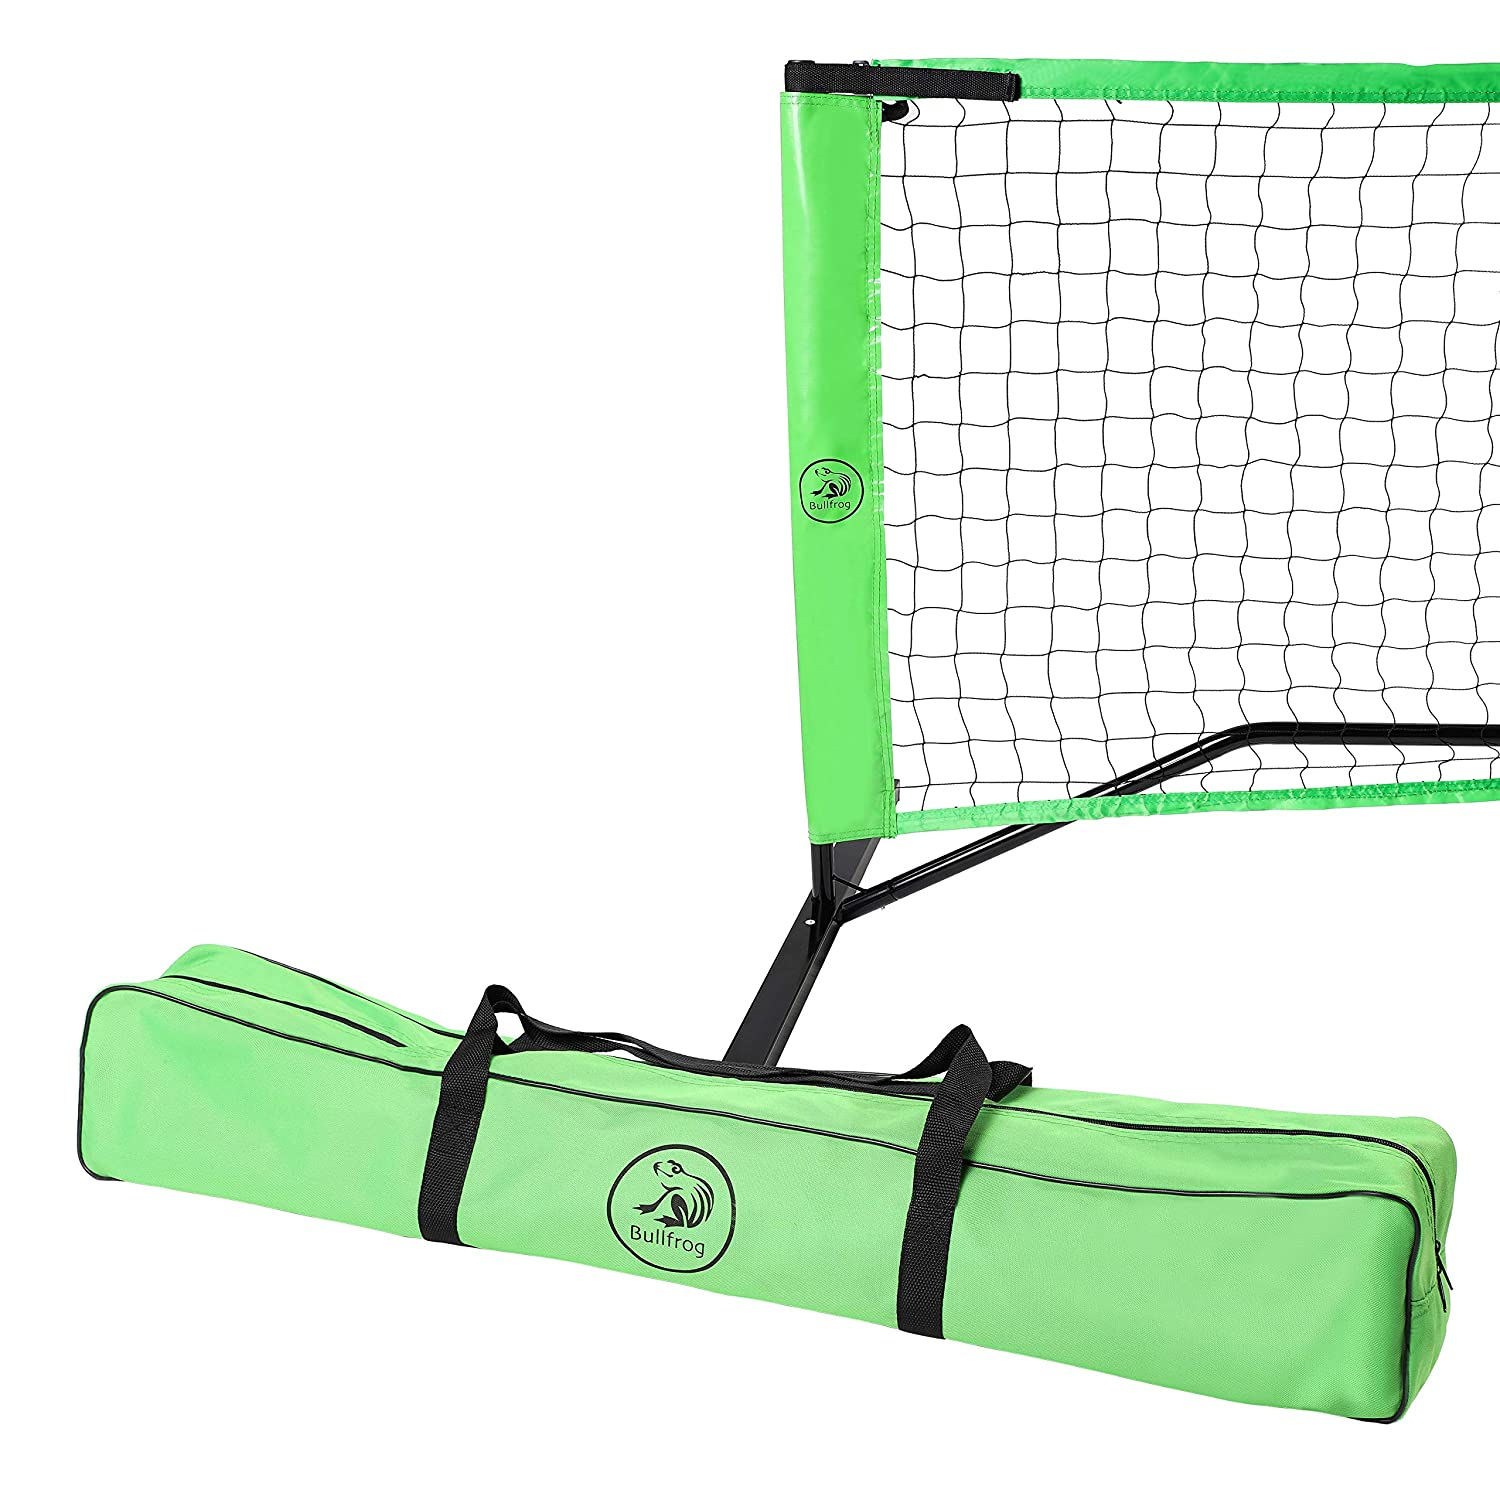 Bullfrog Pickleball Set – Portable Pickleball Net with Pickleball Bag and Assembly Instructions – Perfect for Indoor or Outdoor Pickle Ball